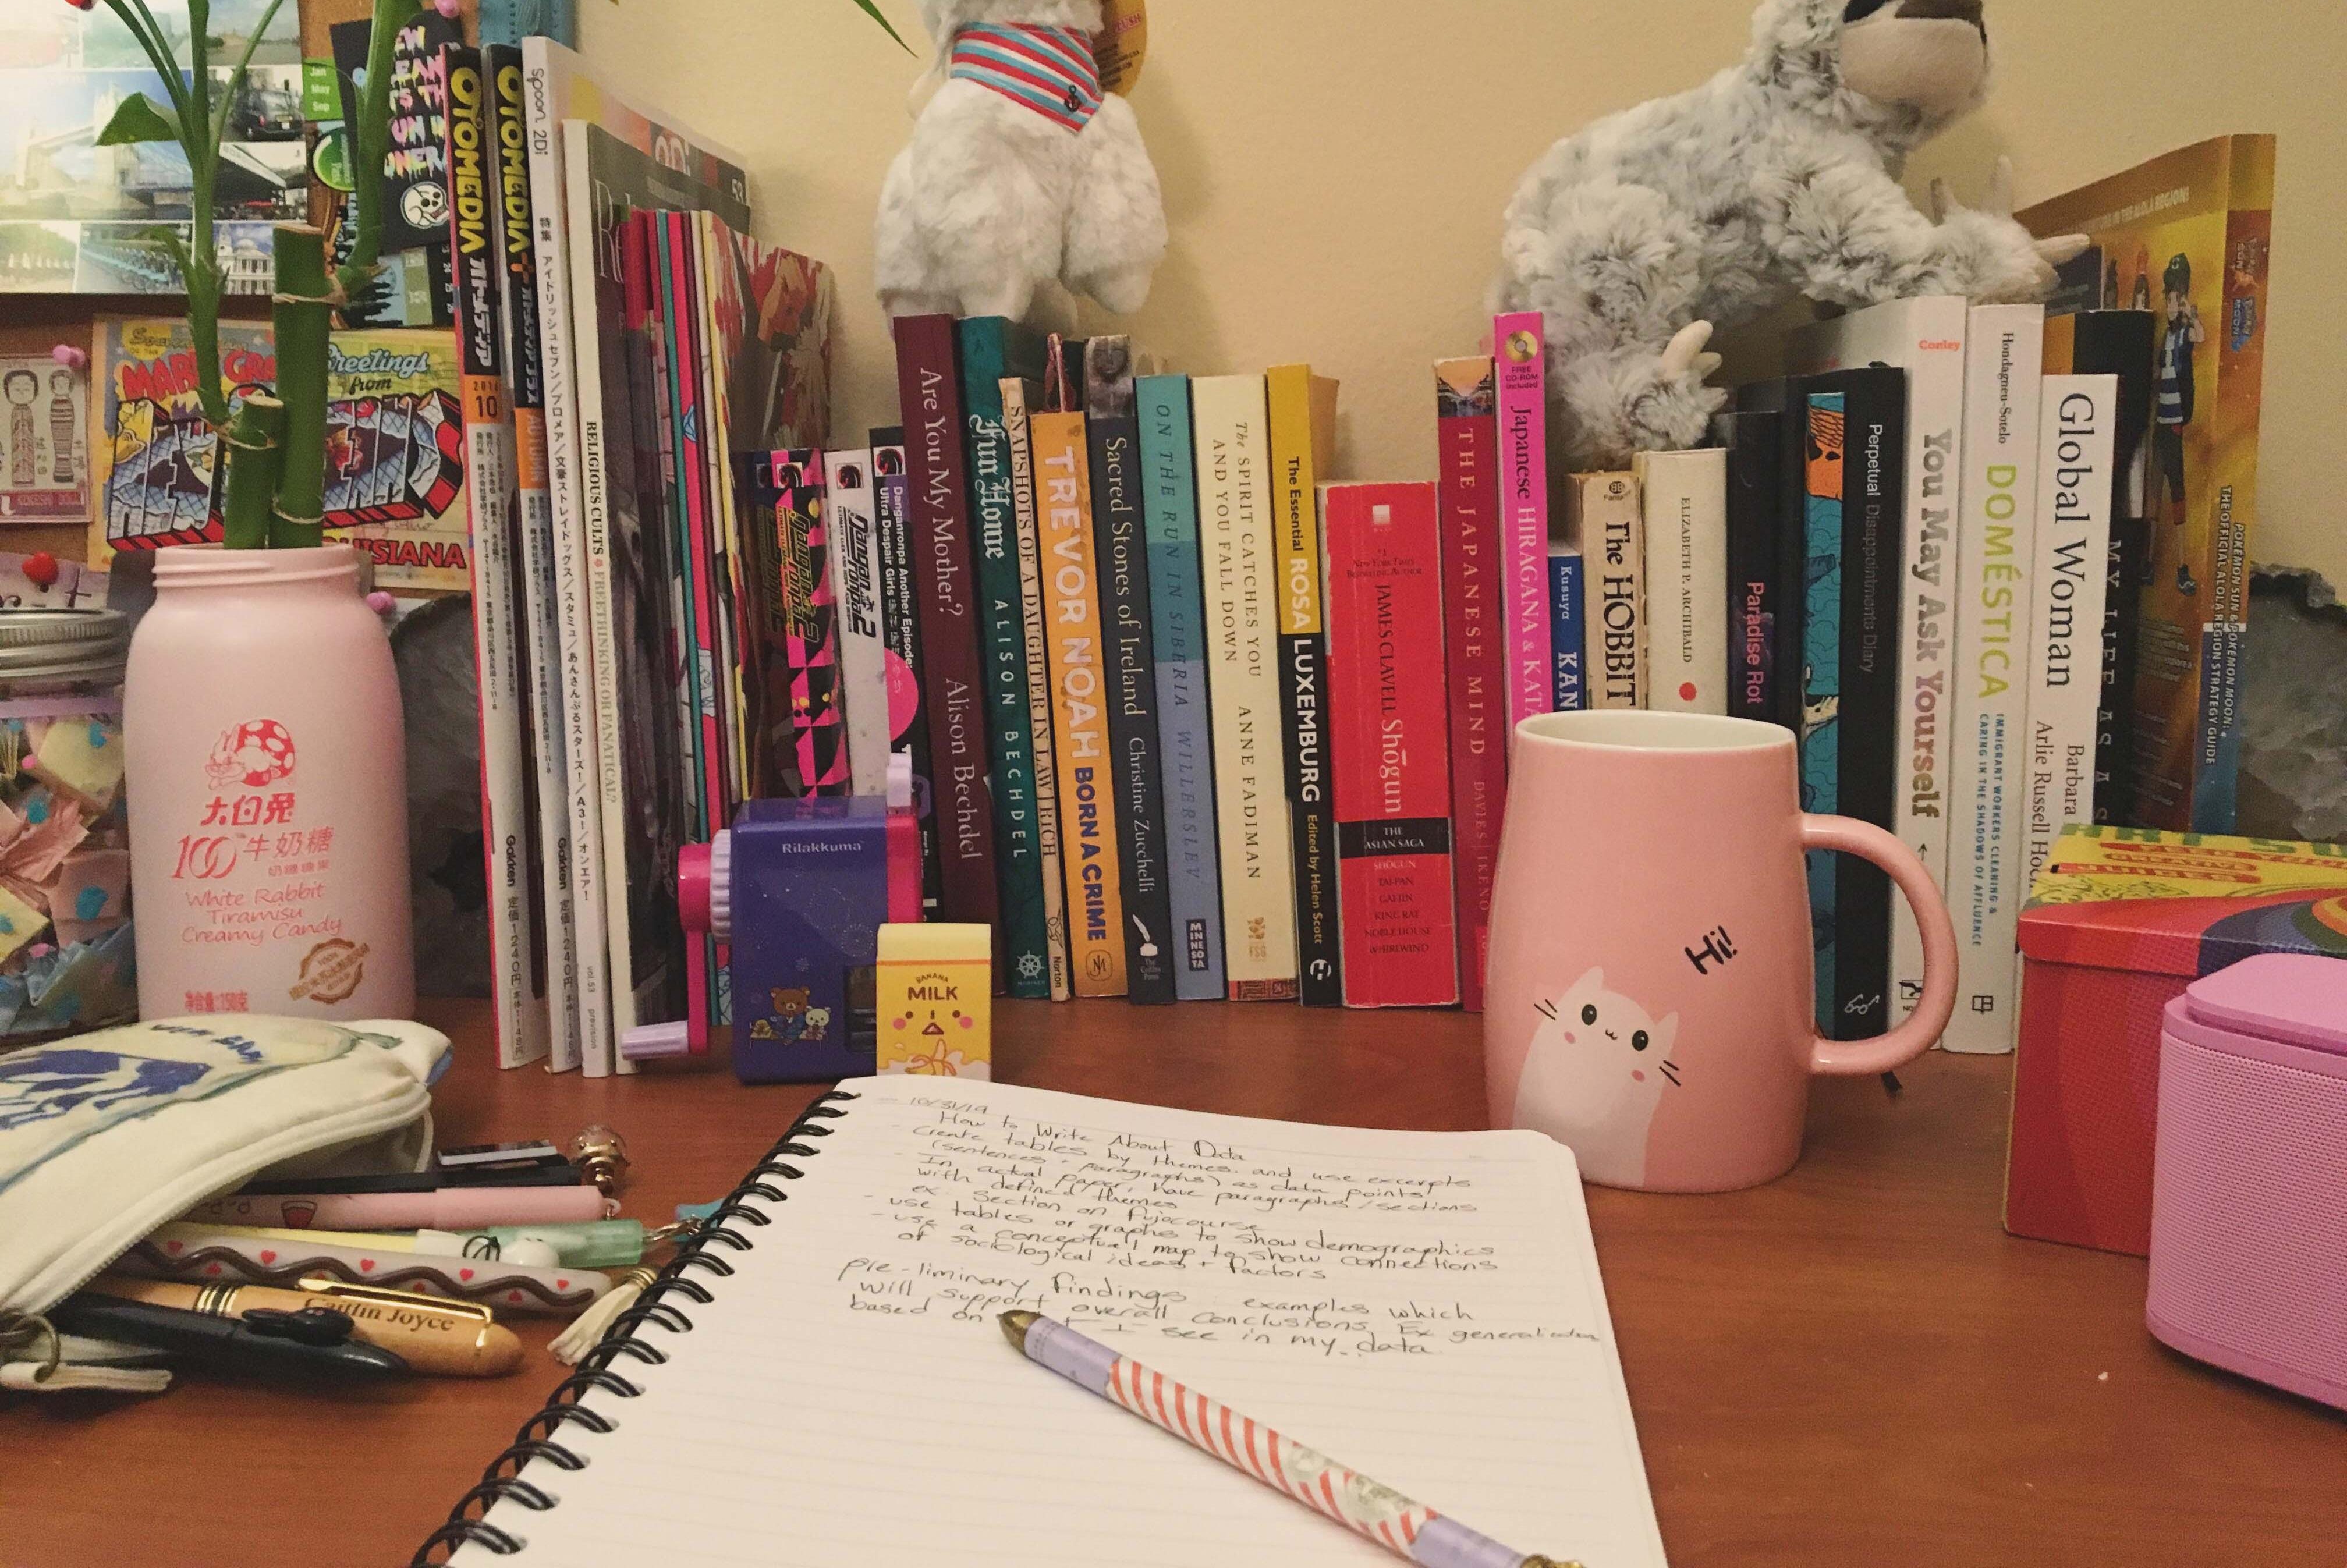 Image of a notebook sitting on a desk with a row of books in the background.